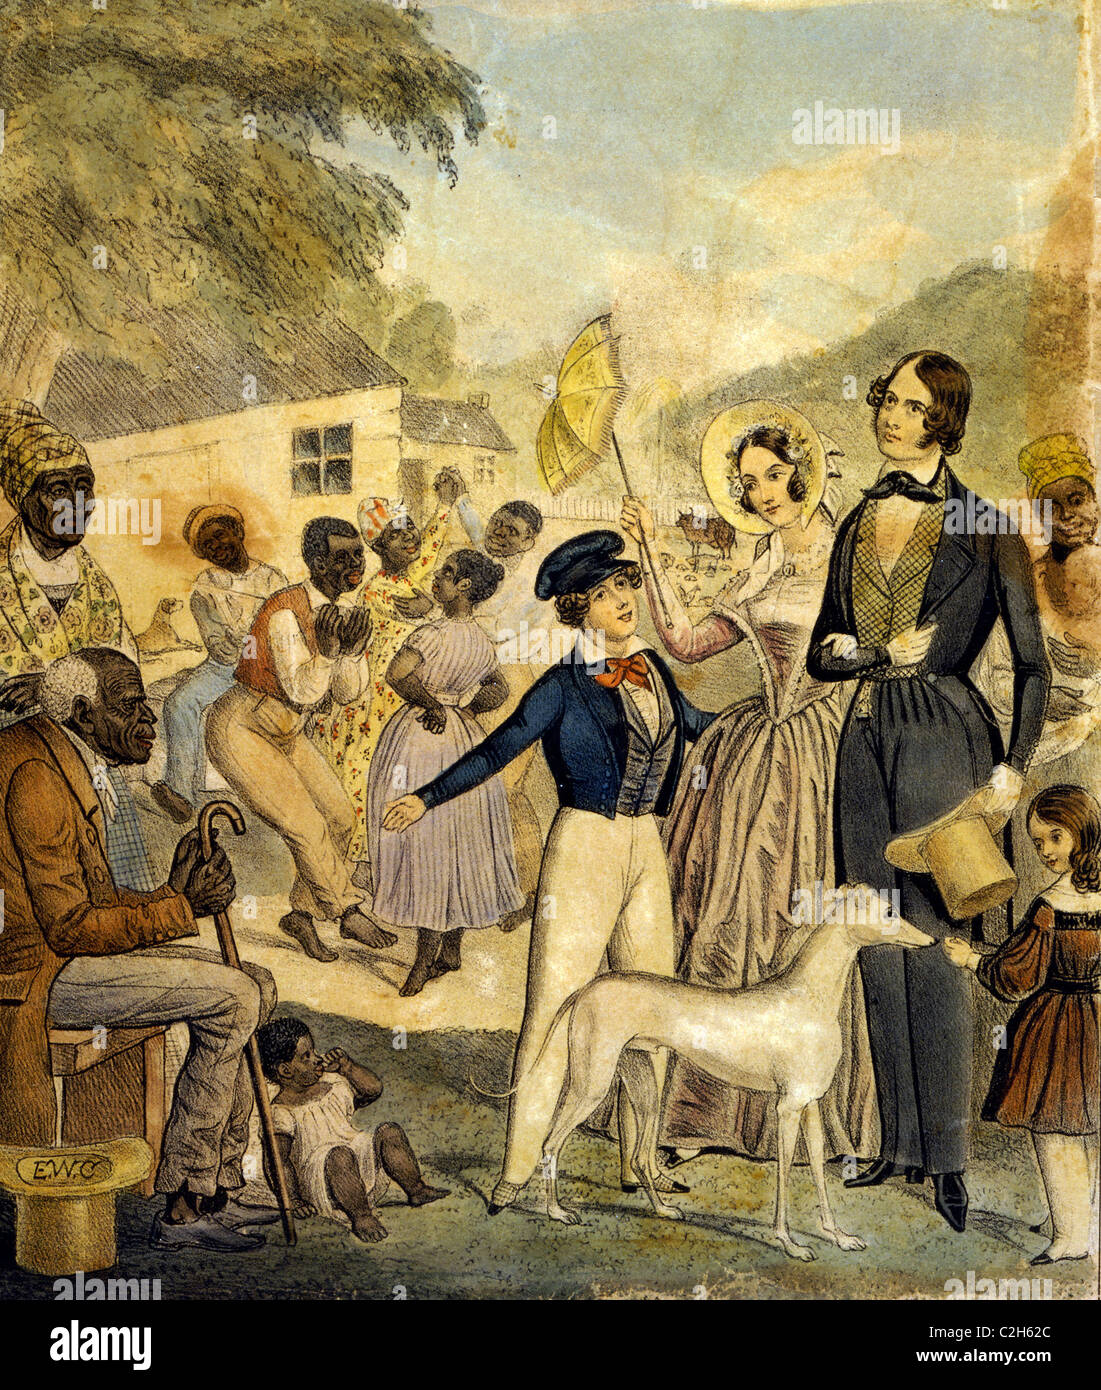 An idealized portrayal of American slavery and the conditions of blacks under this system in 1841. - Stock Image